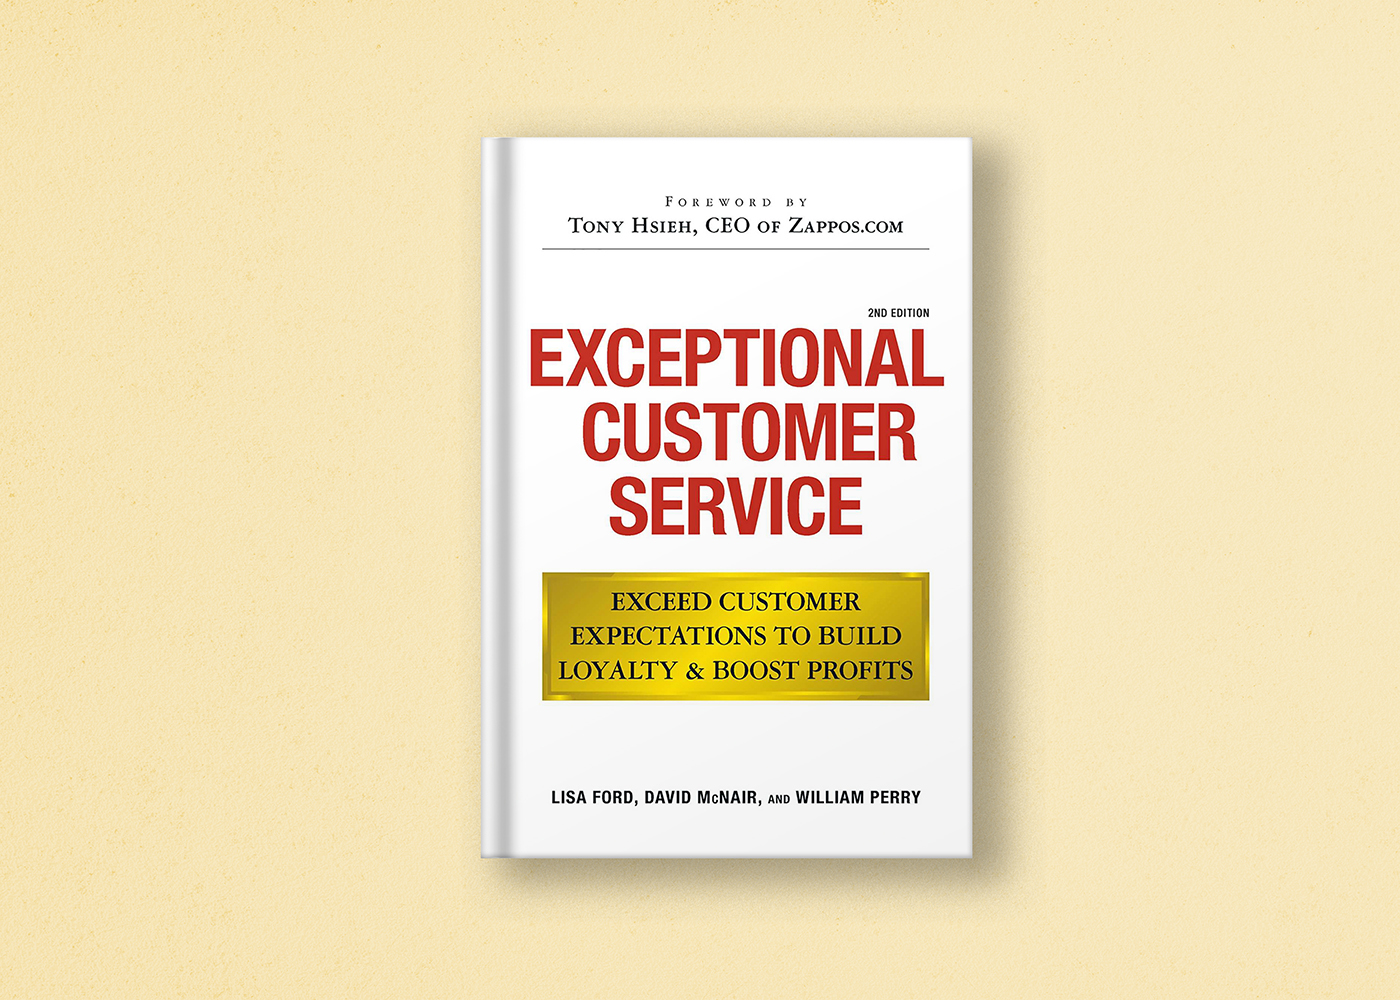 Exceptional Customer Service book